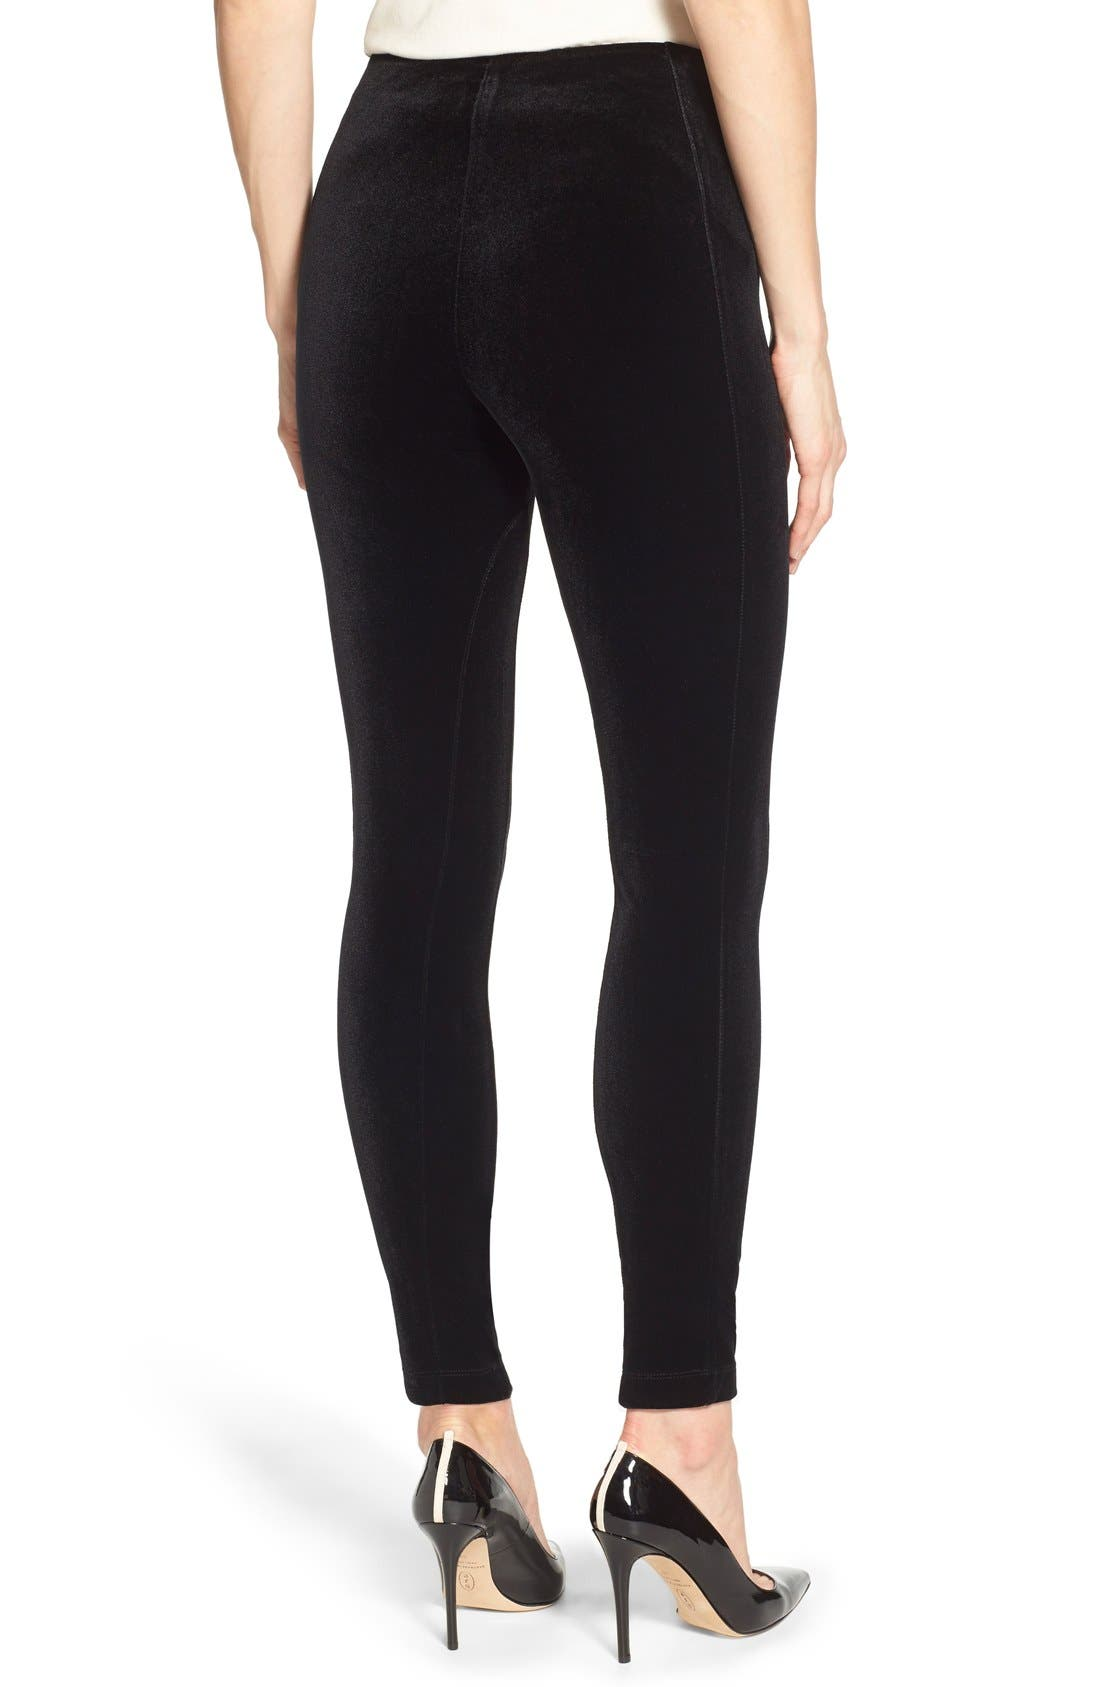 Mara Velvet Leggings,                             Alternate thumbnail 7, color,                             BLACK